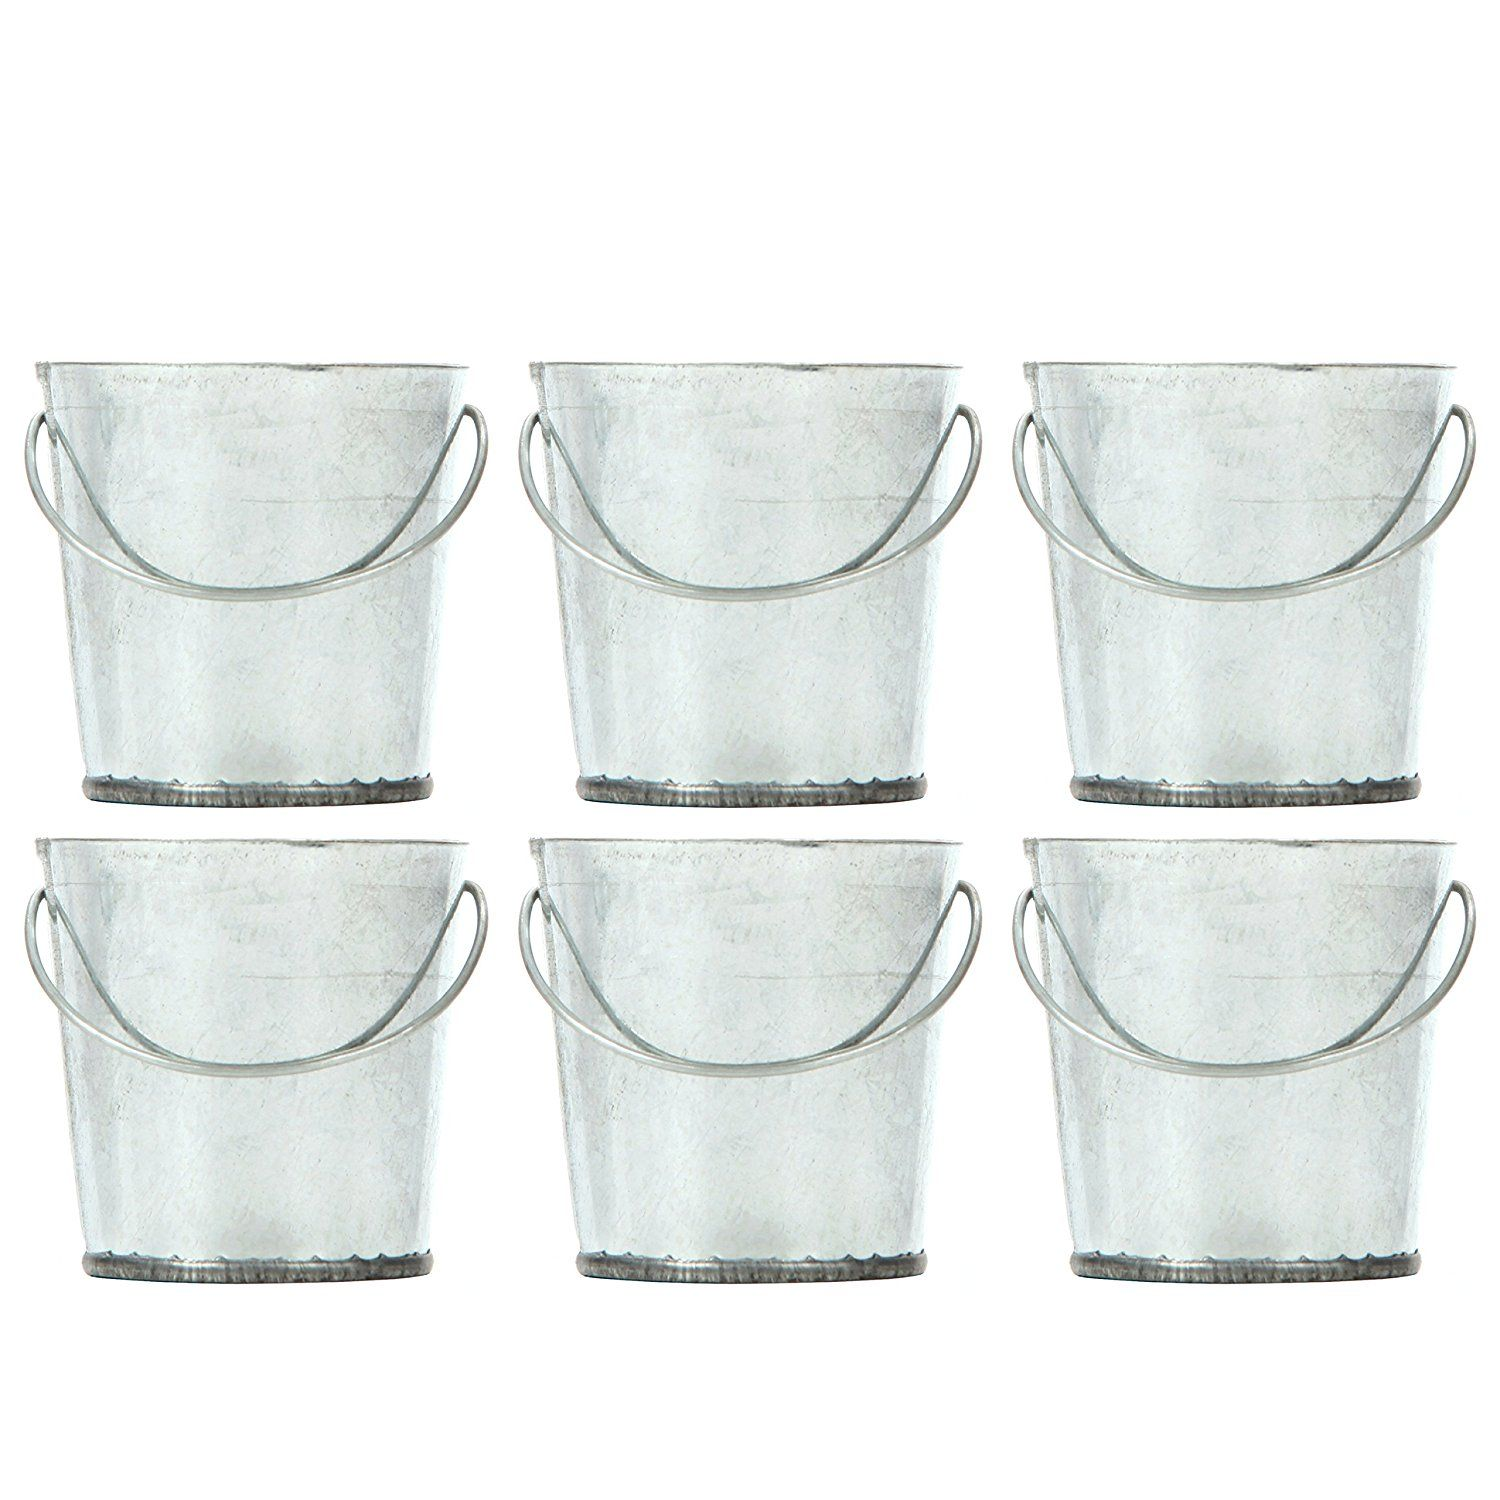 Amazon.com: Hosley\'s Set of 6 Mini Galvanized Buckets - 2.25\